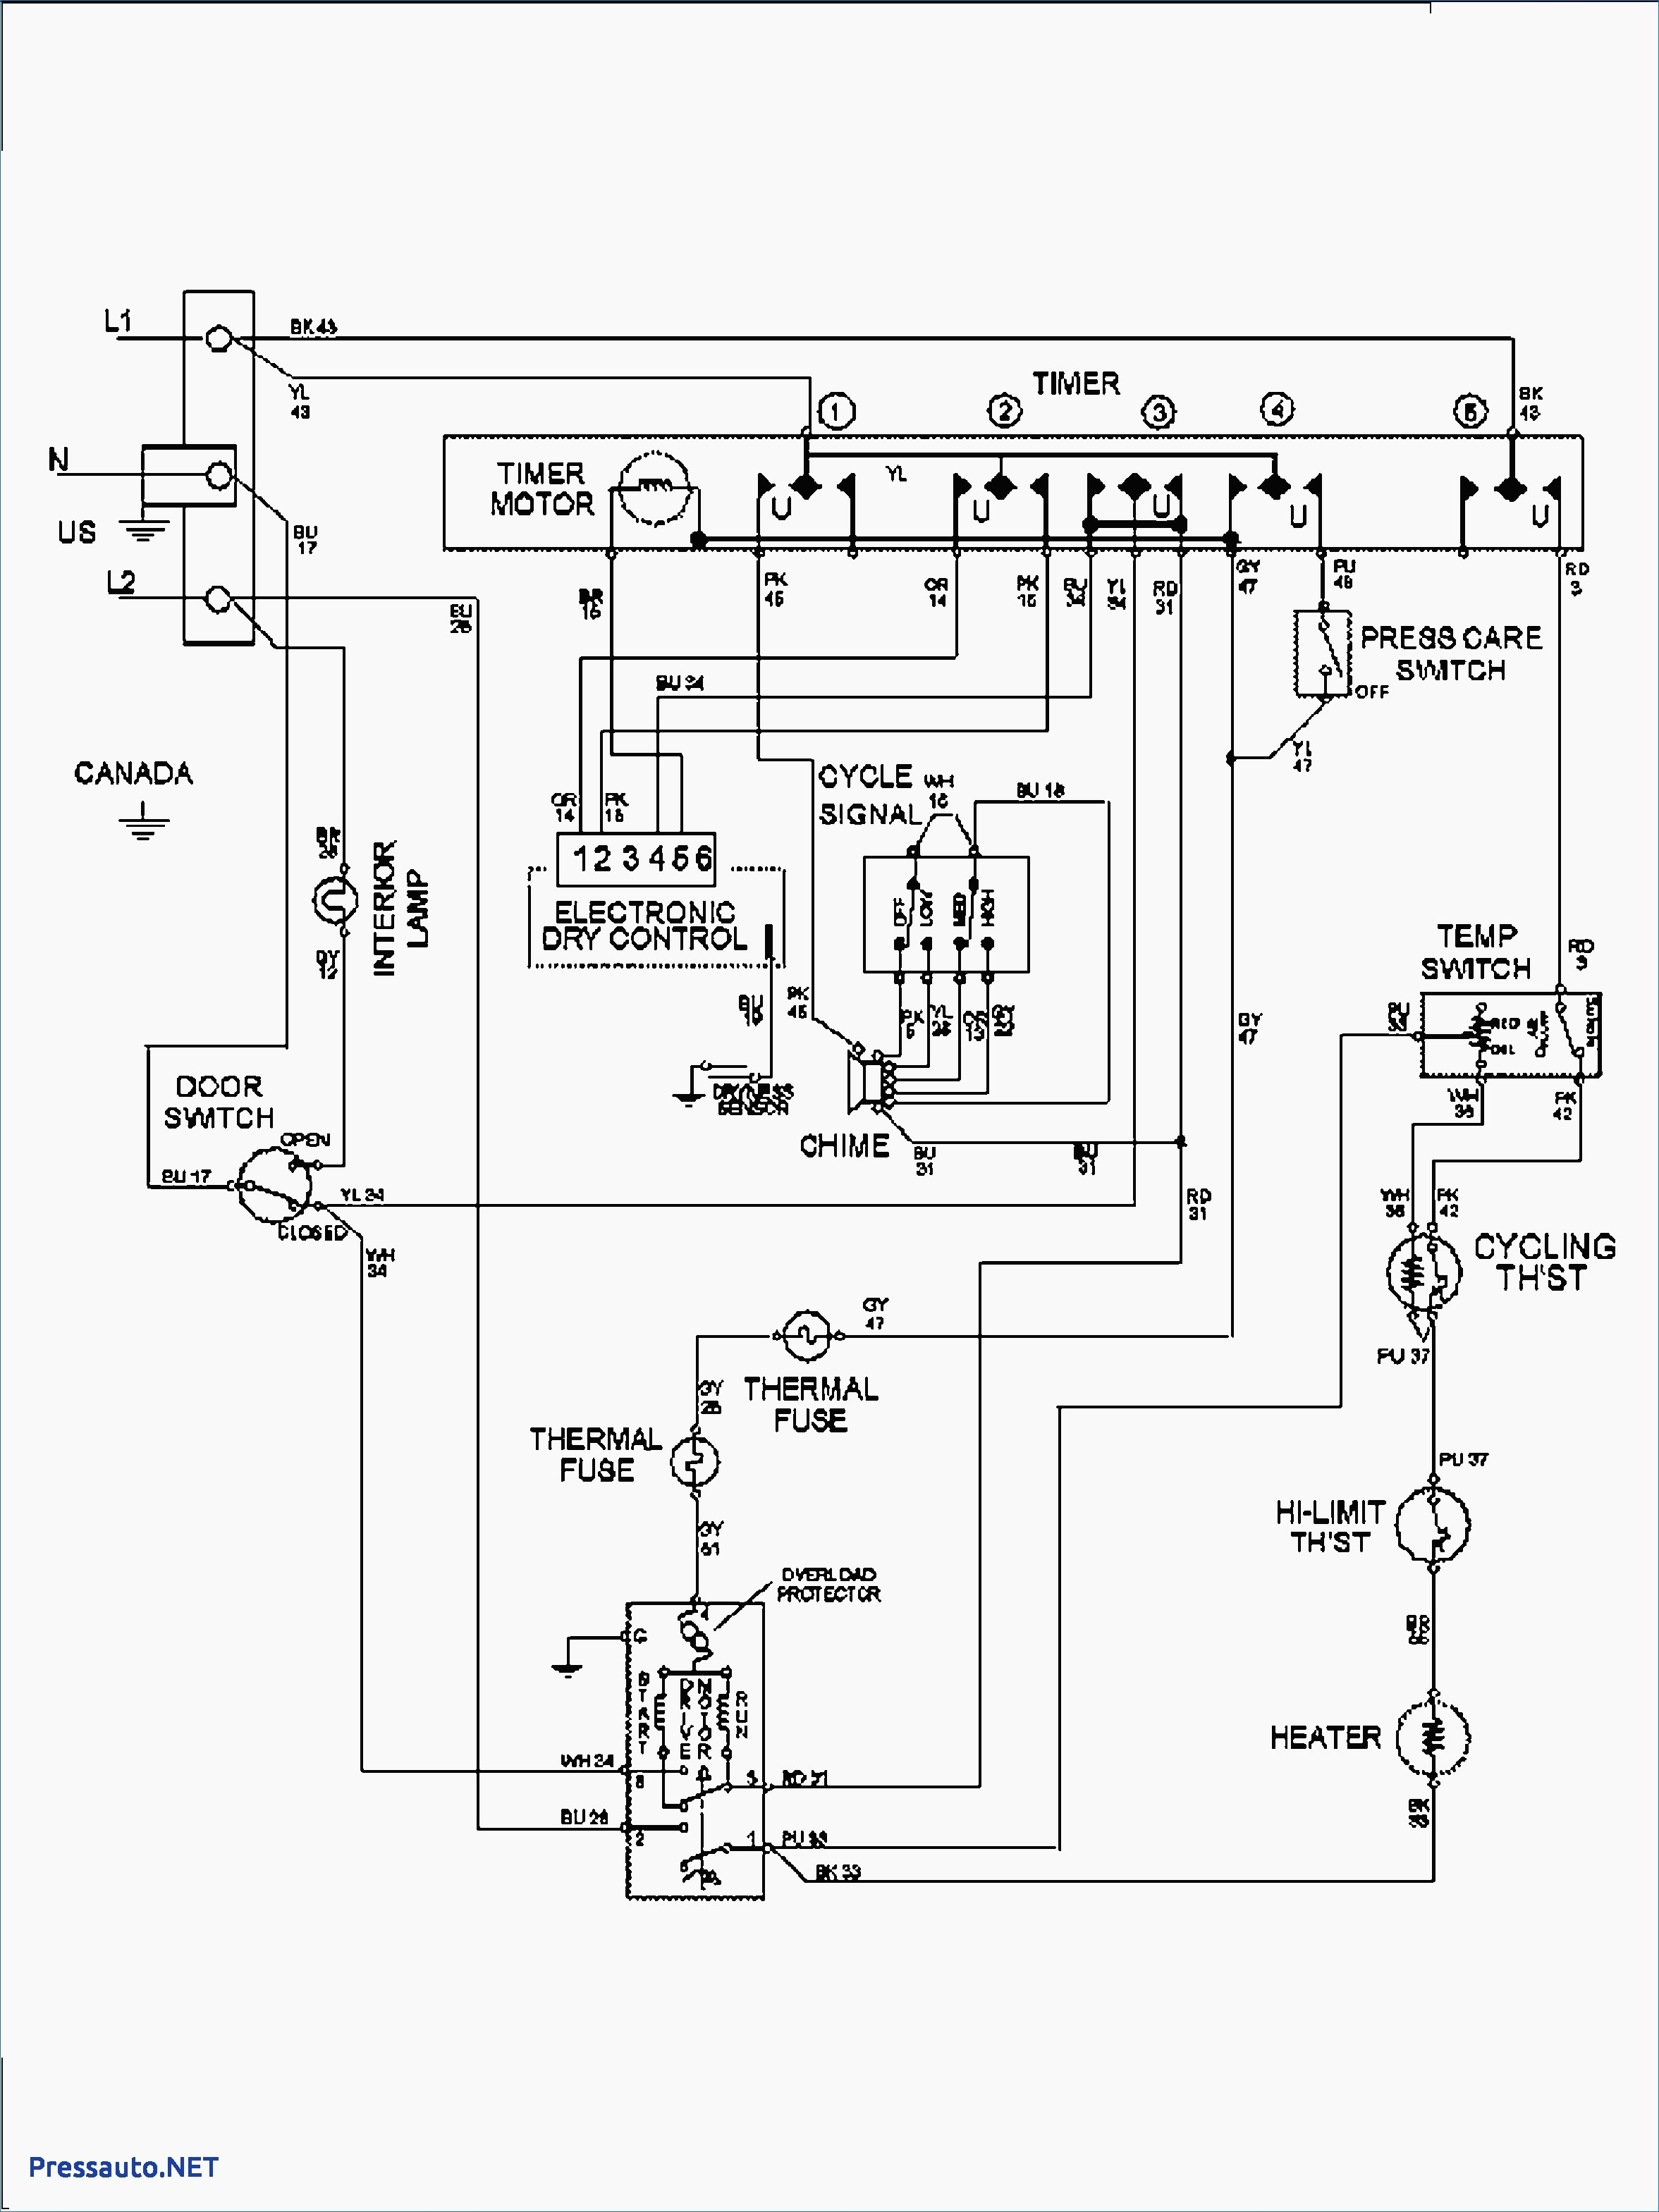 wiring diagrams for whirlpool dryer